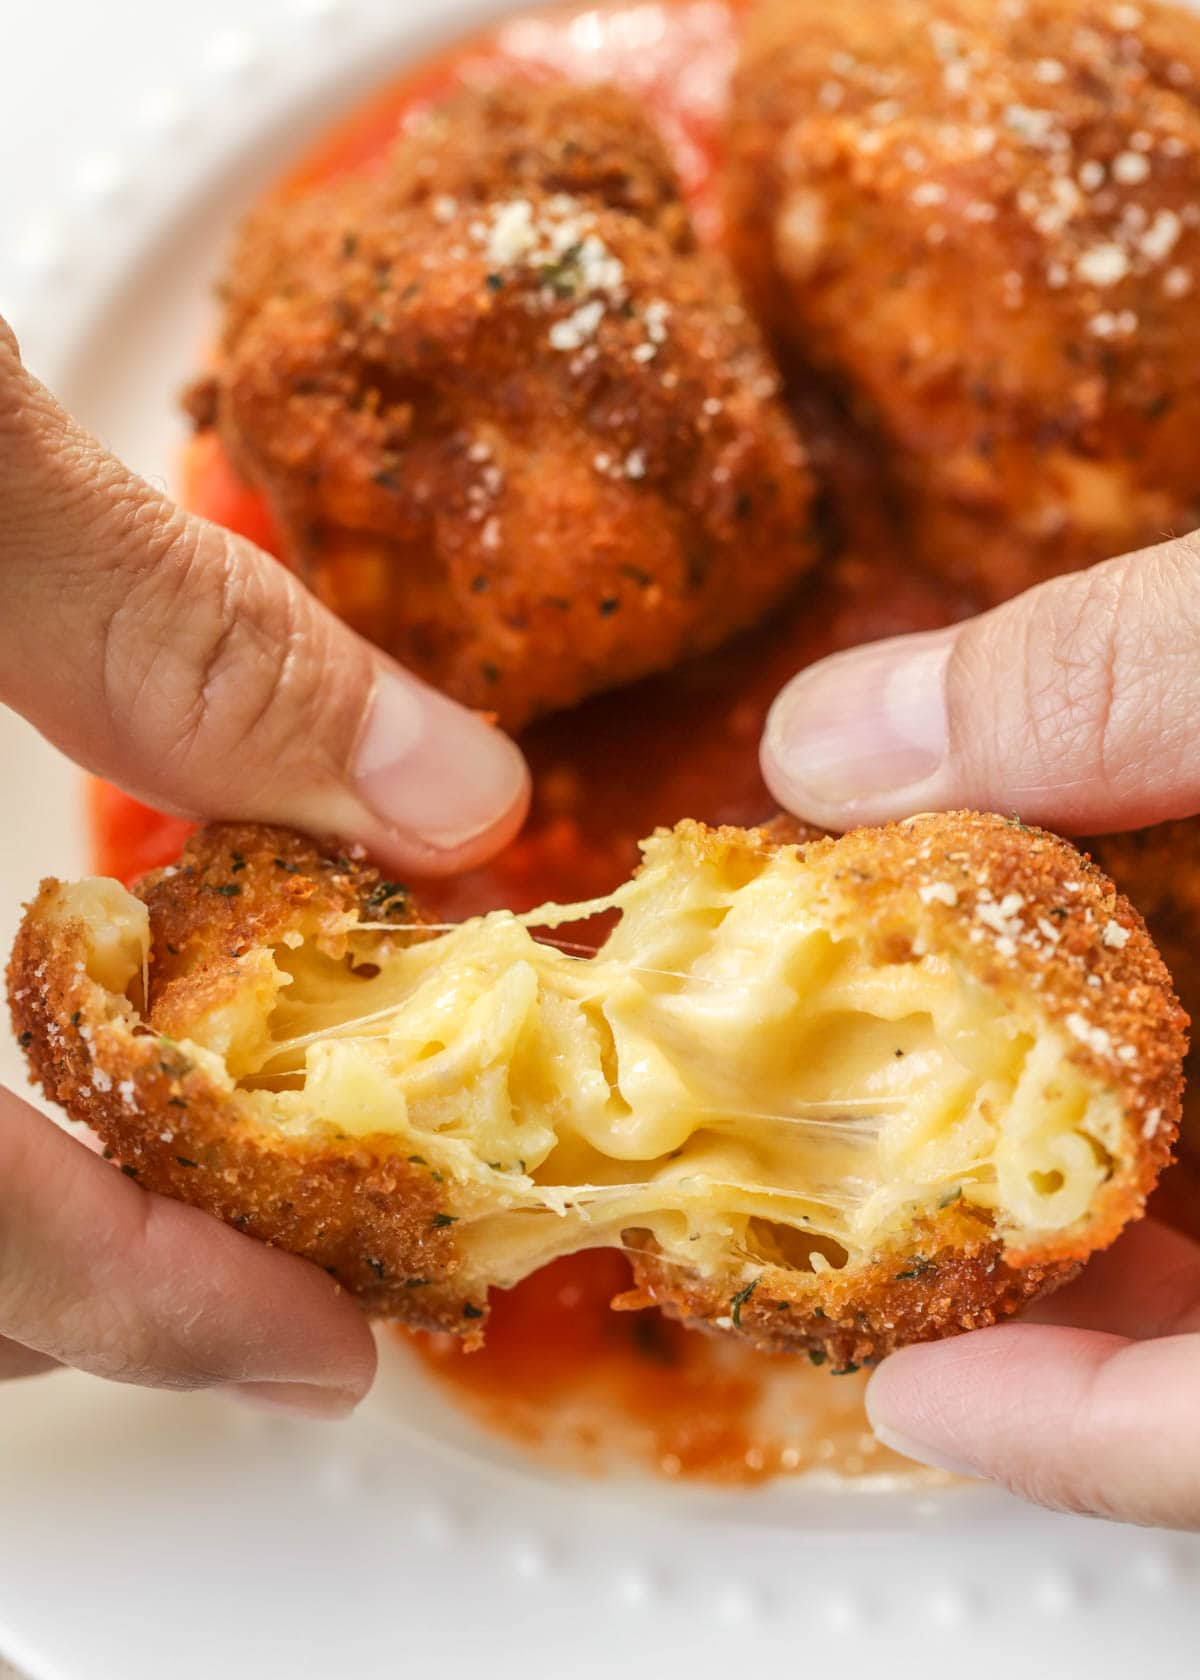 Two hands pulling apart a fried mac and cheese ball revealing the gooey center